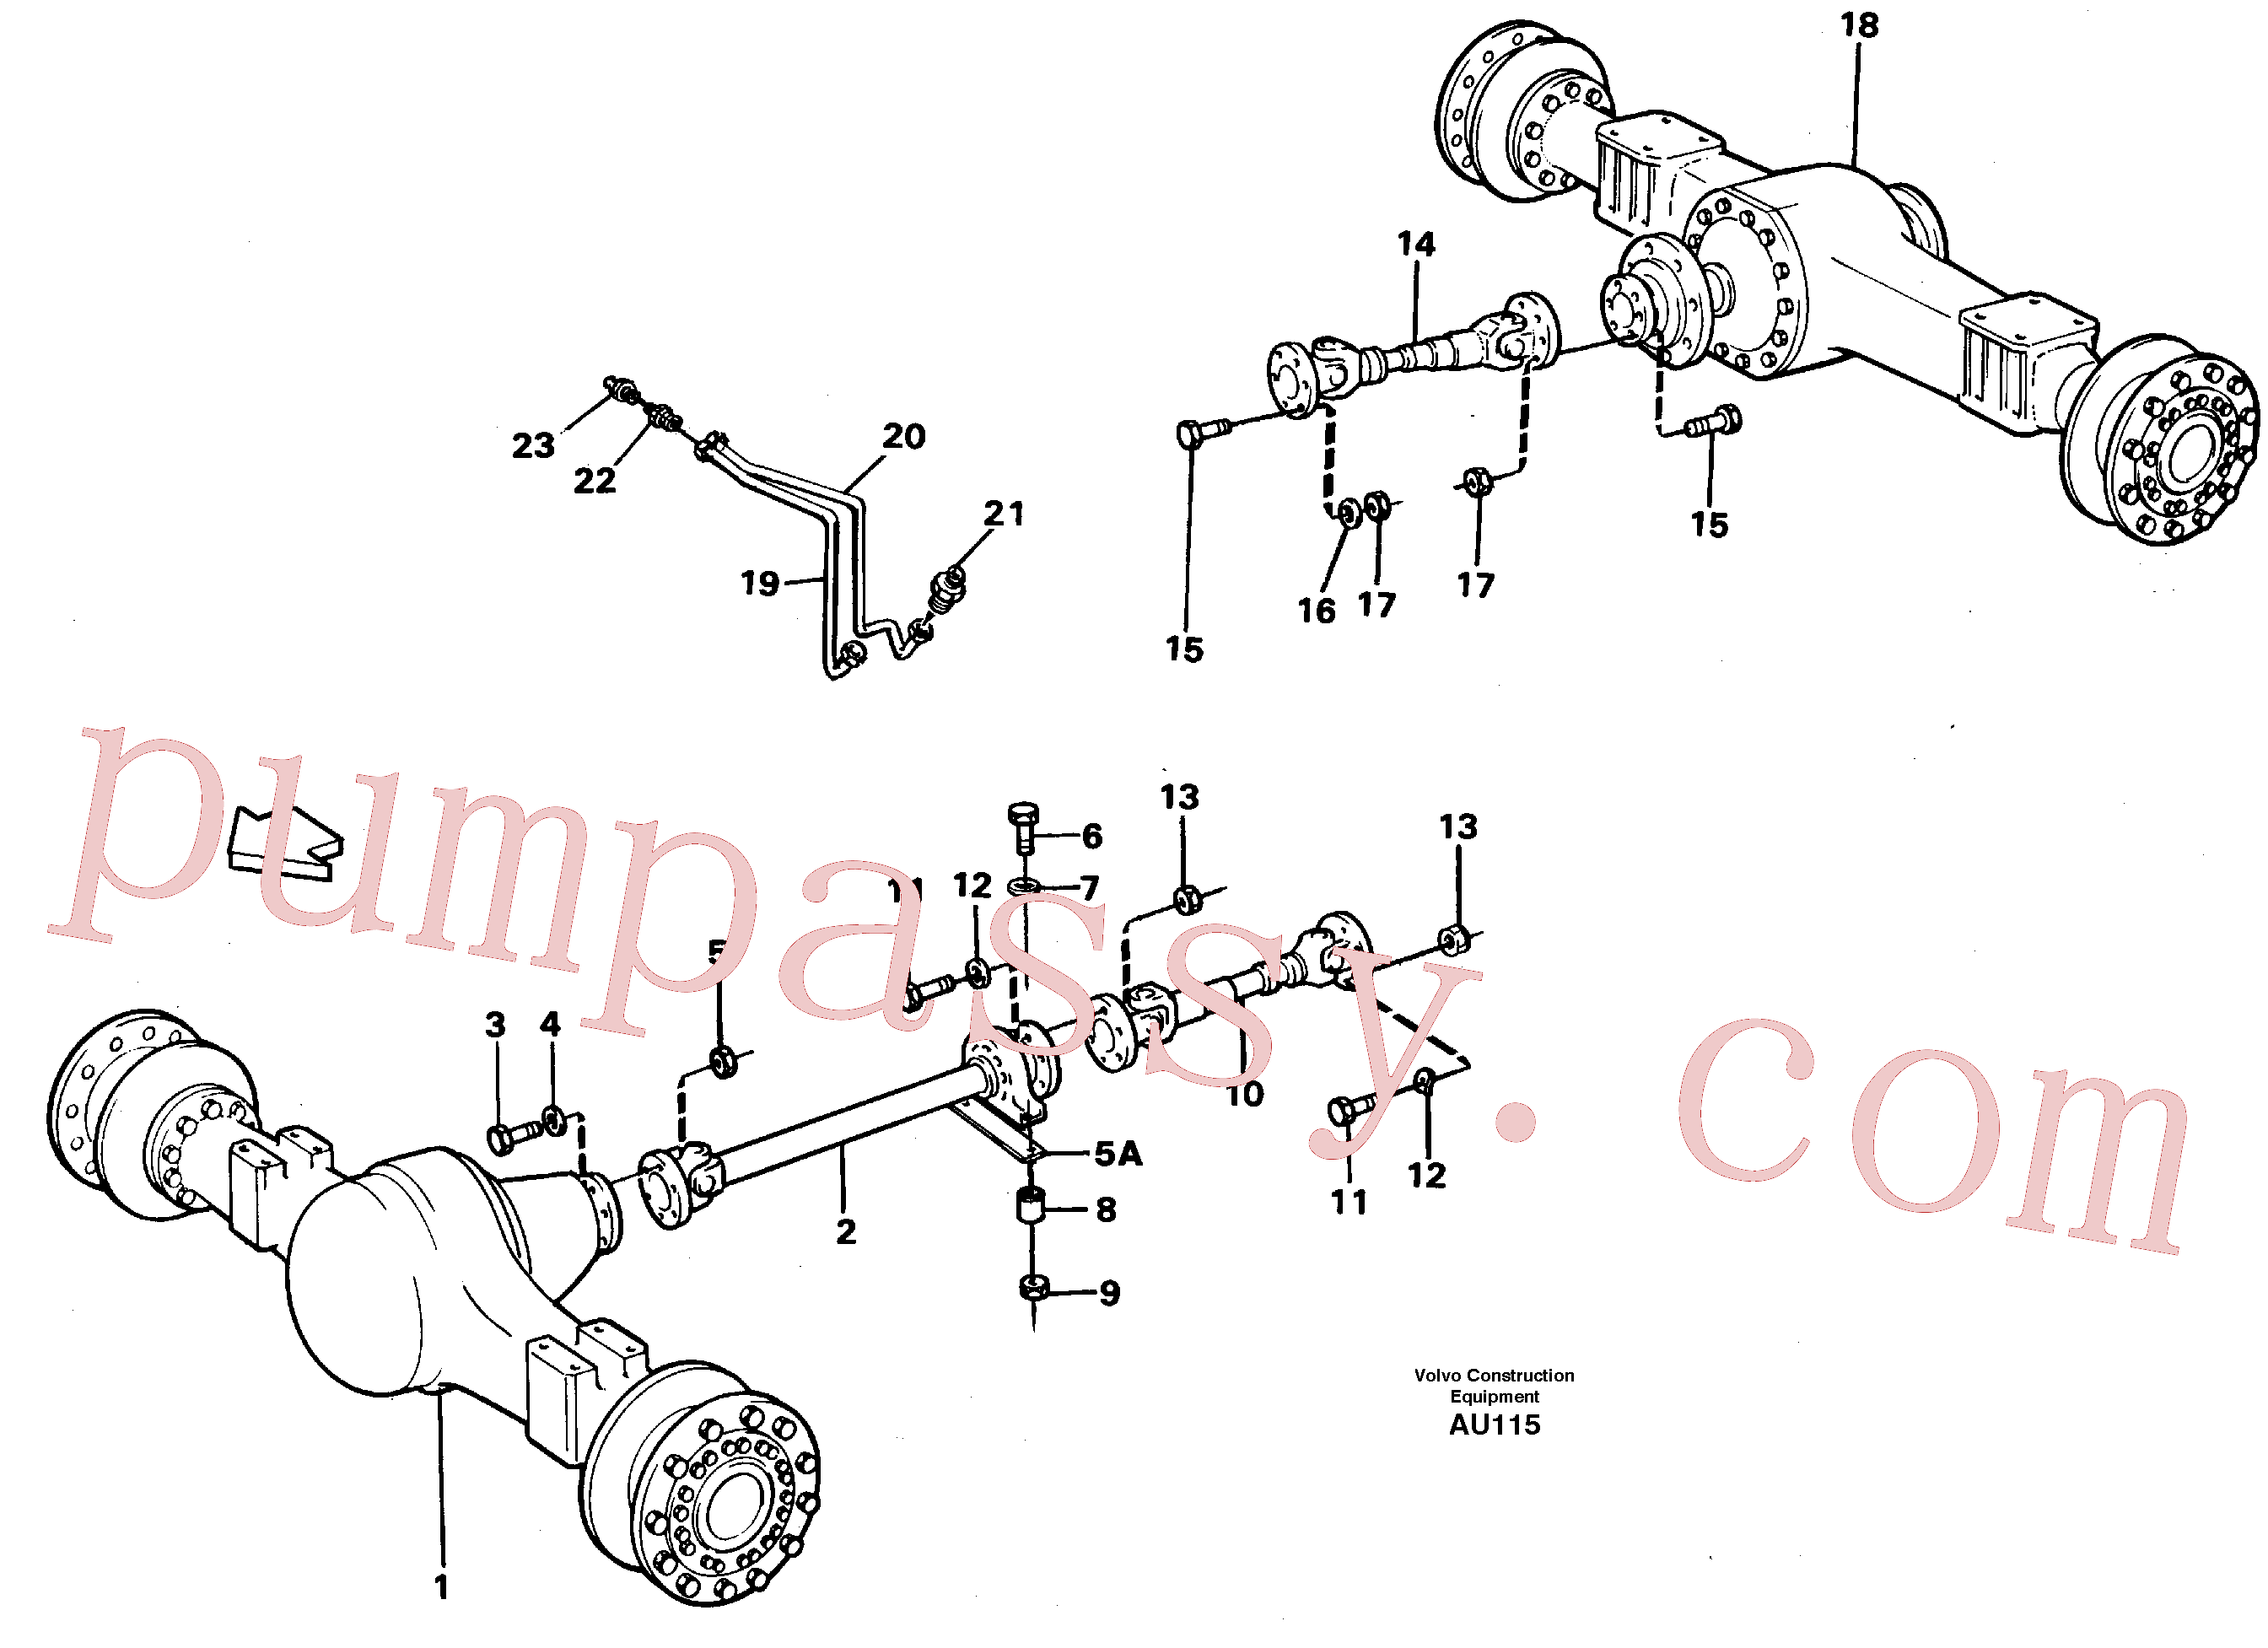 VOE4854494 for Volvo Propeller shafts with fitting parts(AU115 assembly)